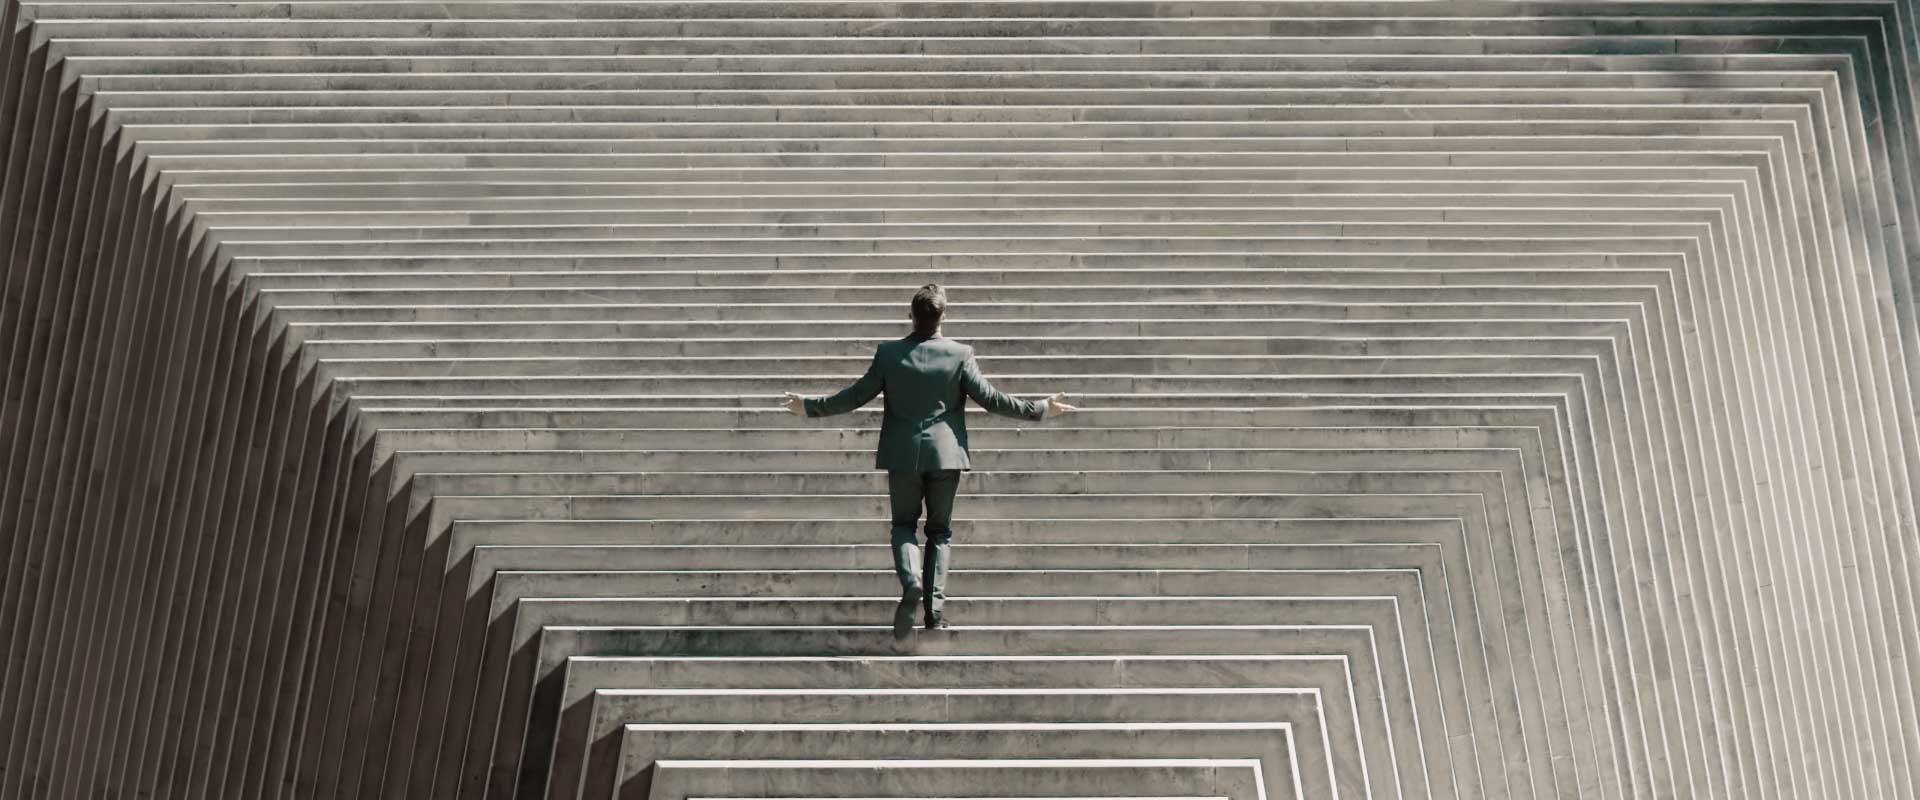 Men and stairs. Still from Lexus LX2016 Commercial.